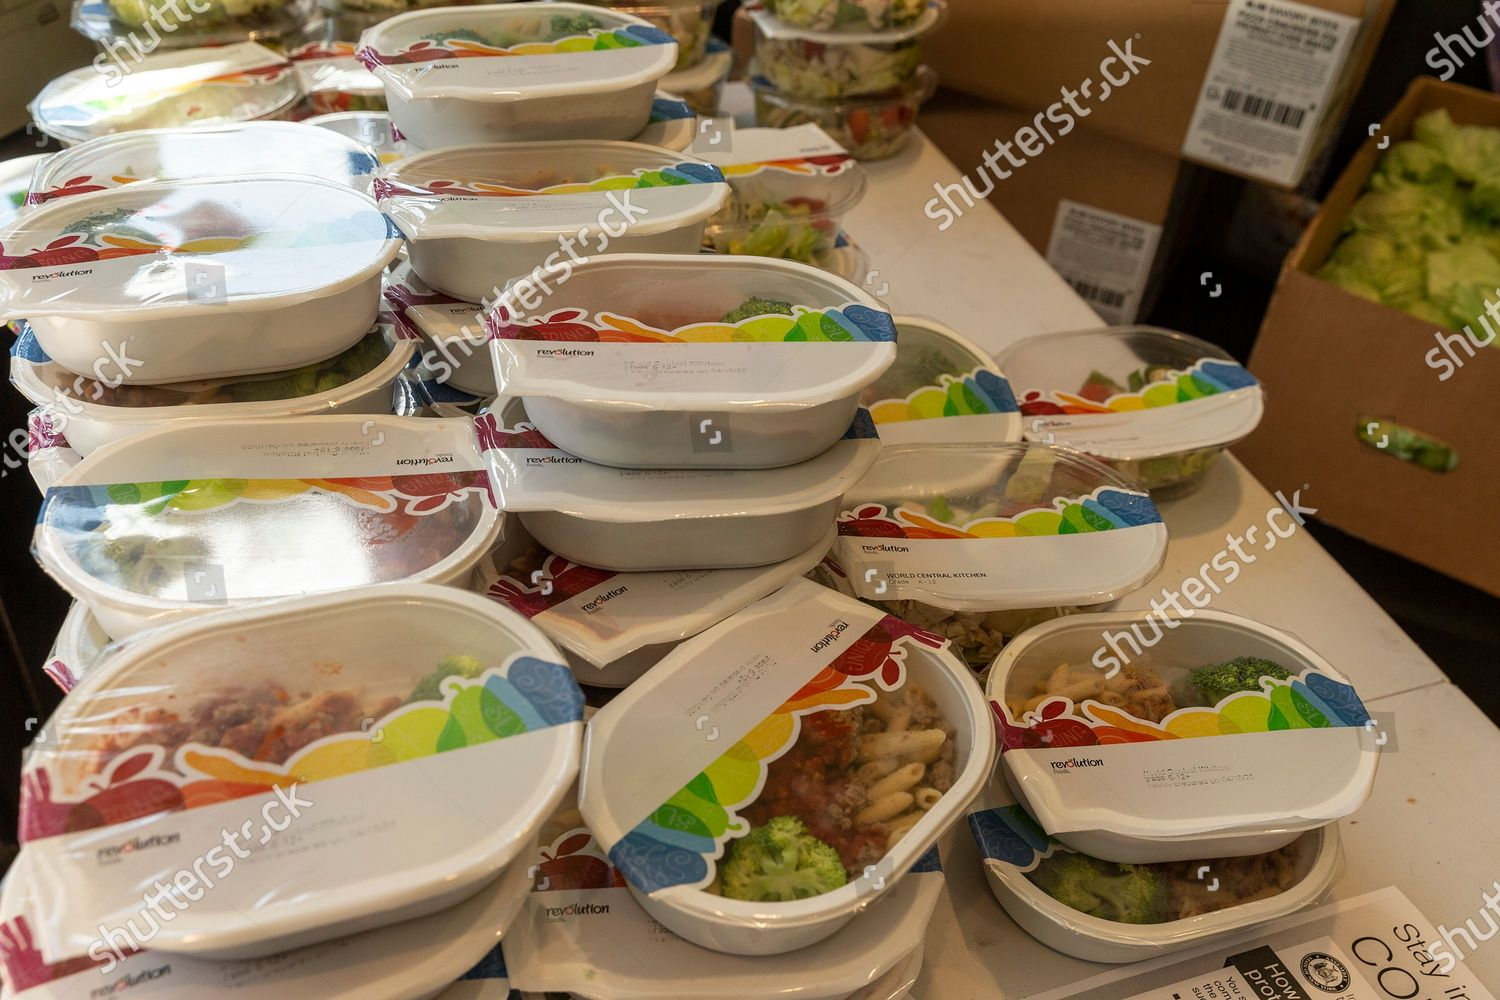 Packages Free Food Beatstro Restaurant Amid Covid19 Foto Editorial